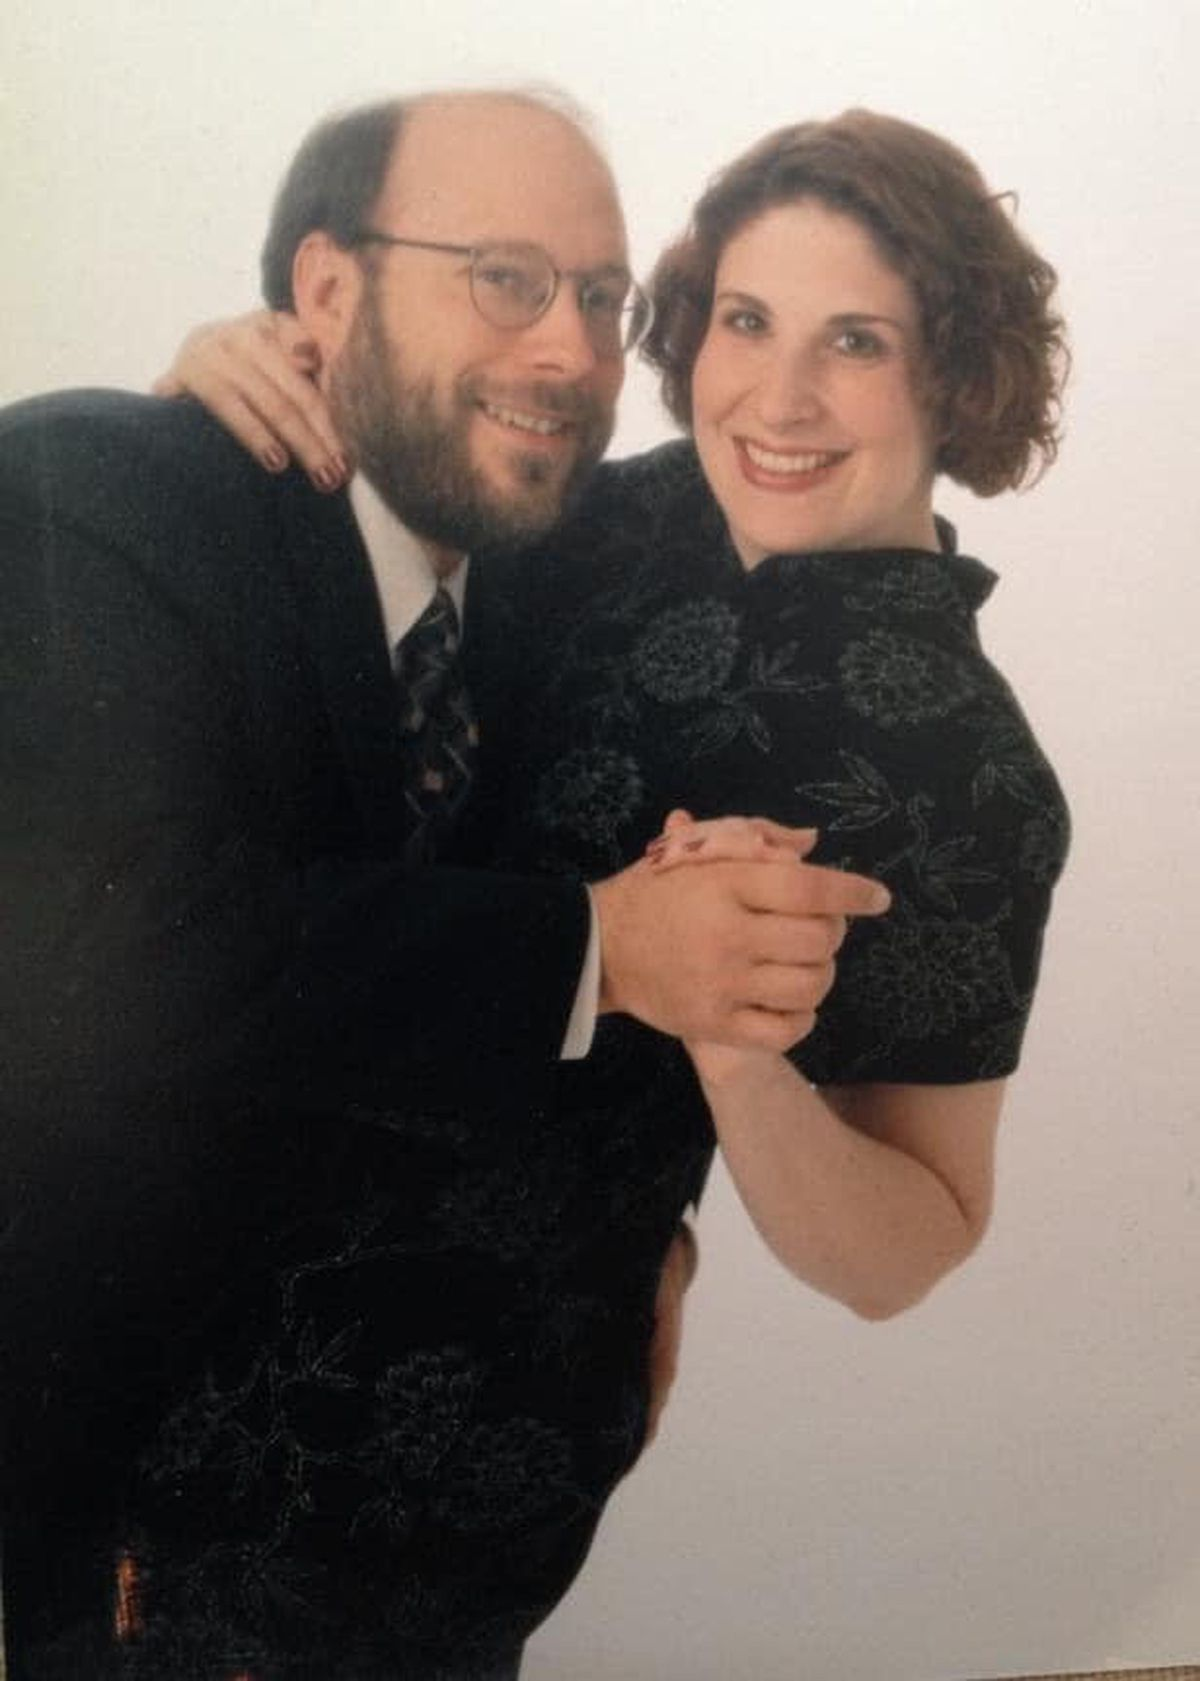 Stacy and Jeff Oliver when they got engaged.